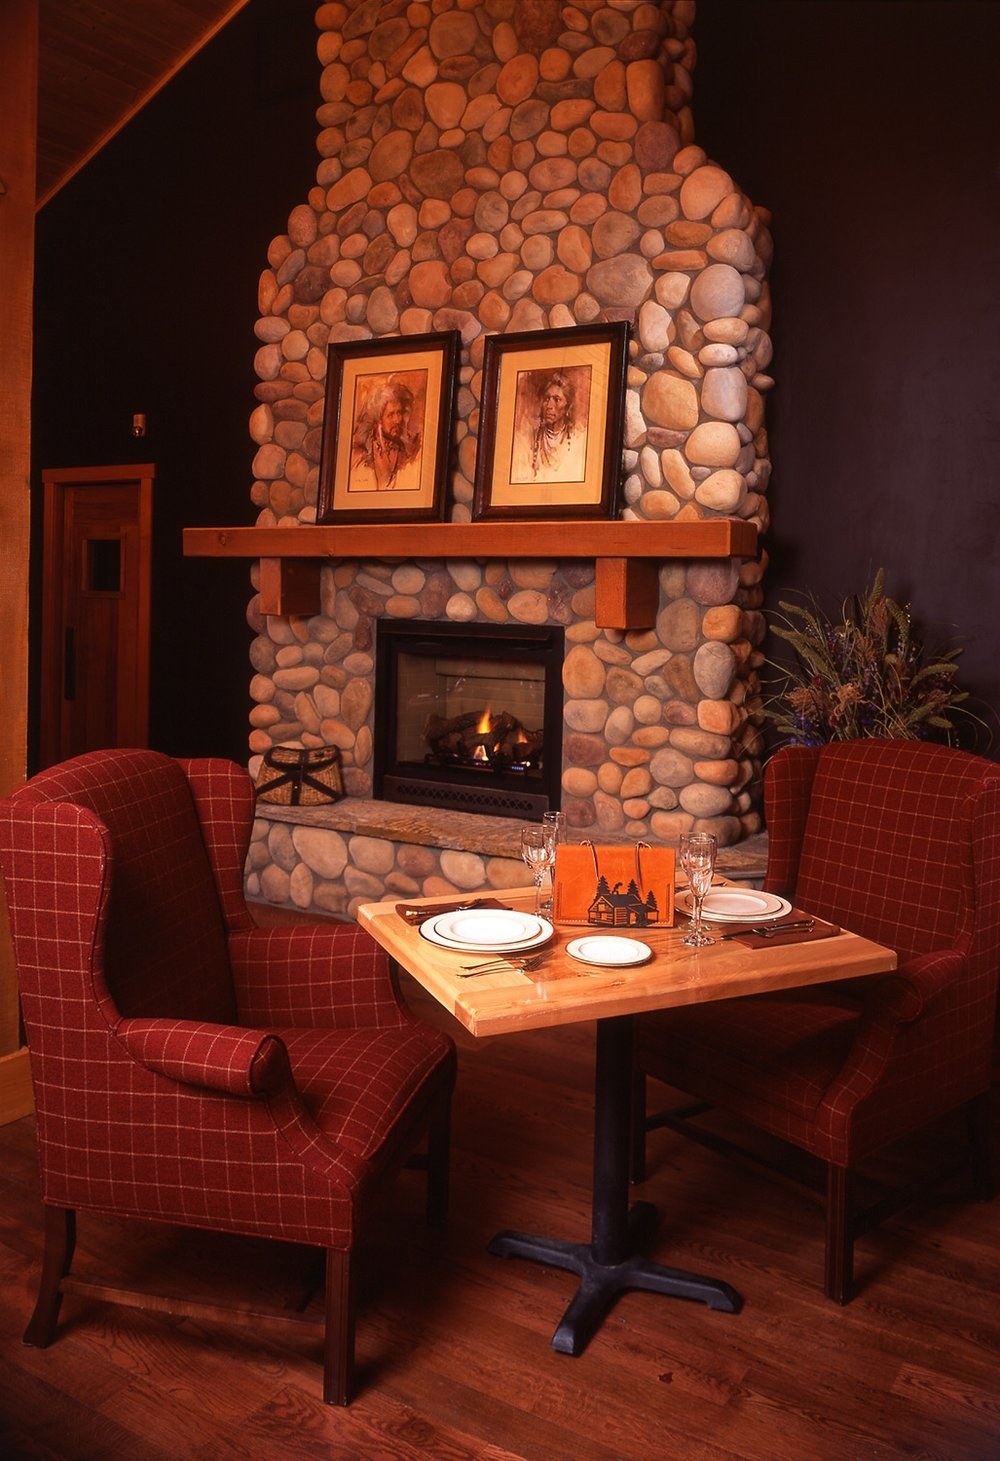 wyoming, lodge, wood, stone fireplace, dark textures, dark tones, hardwood floors, dining table